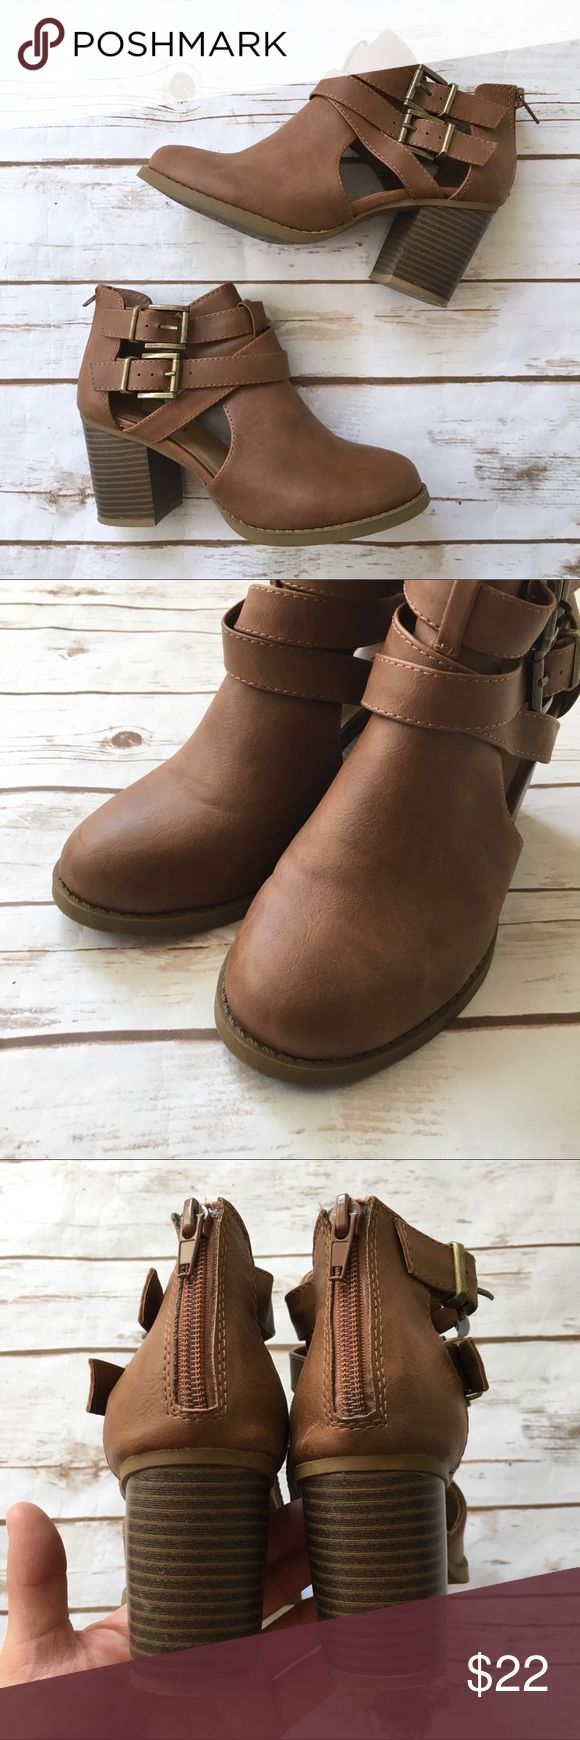 """Soda Camel Strappy Stacked Heeled Bootie Adorable preppy camel-colored vegan leather stacked strappy booties by Soda. • Worn once • 3"""" heel • Can fit 6.5 to a smaller 7  🚭 Smoke-free home 📬 Ships by next day 💲 Price negotiable  🔁 Open to trades Soda Shoes Ankle Boots & Booties"""